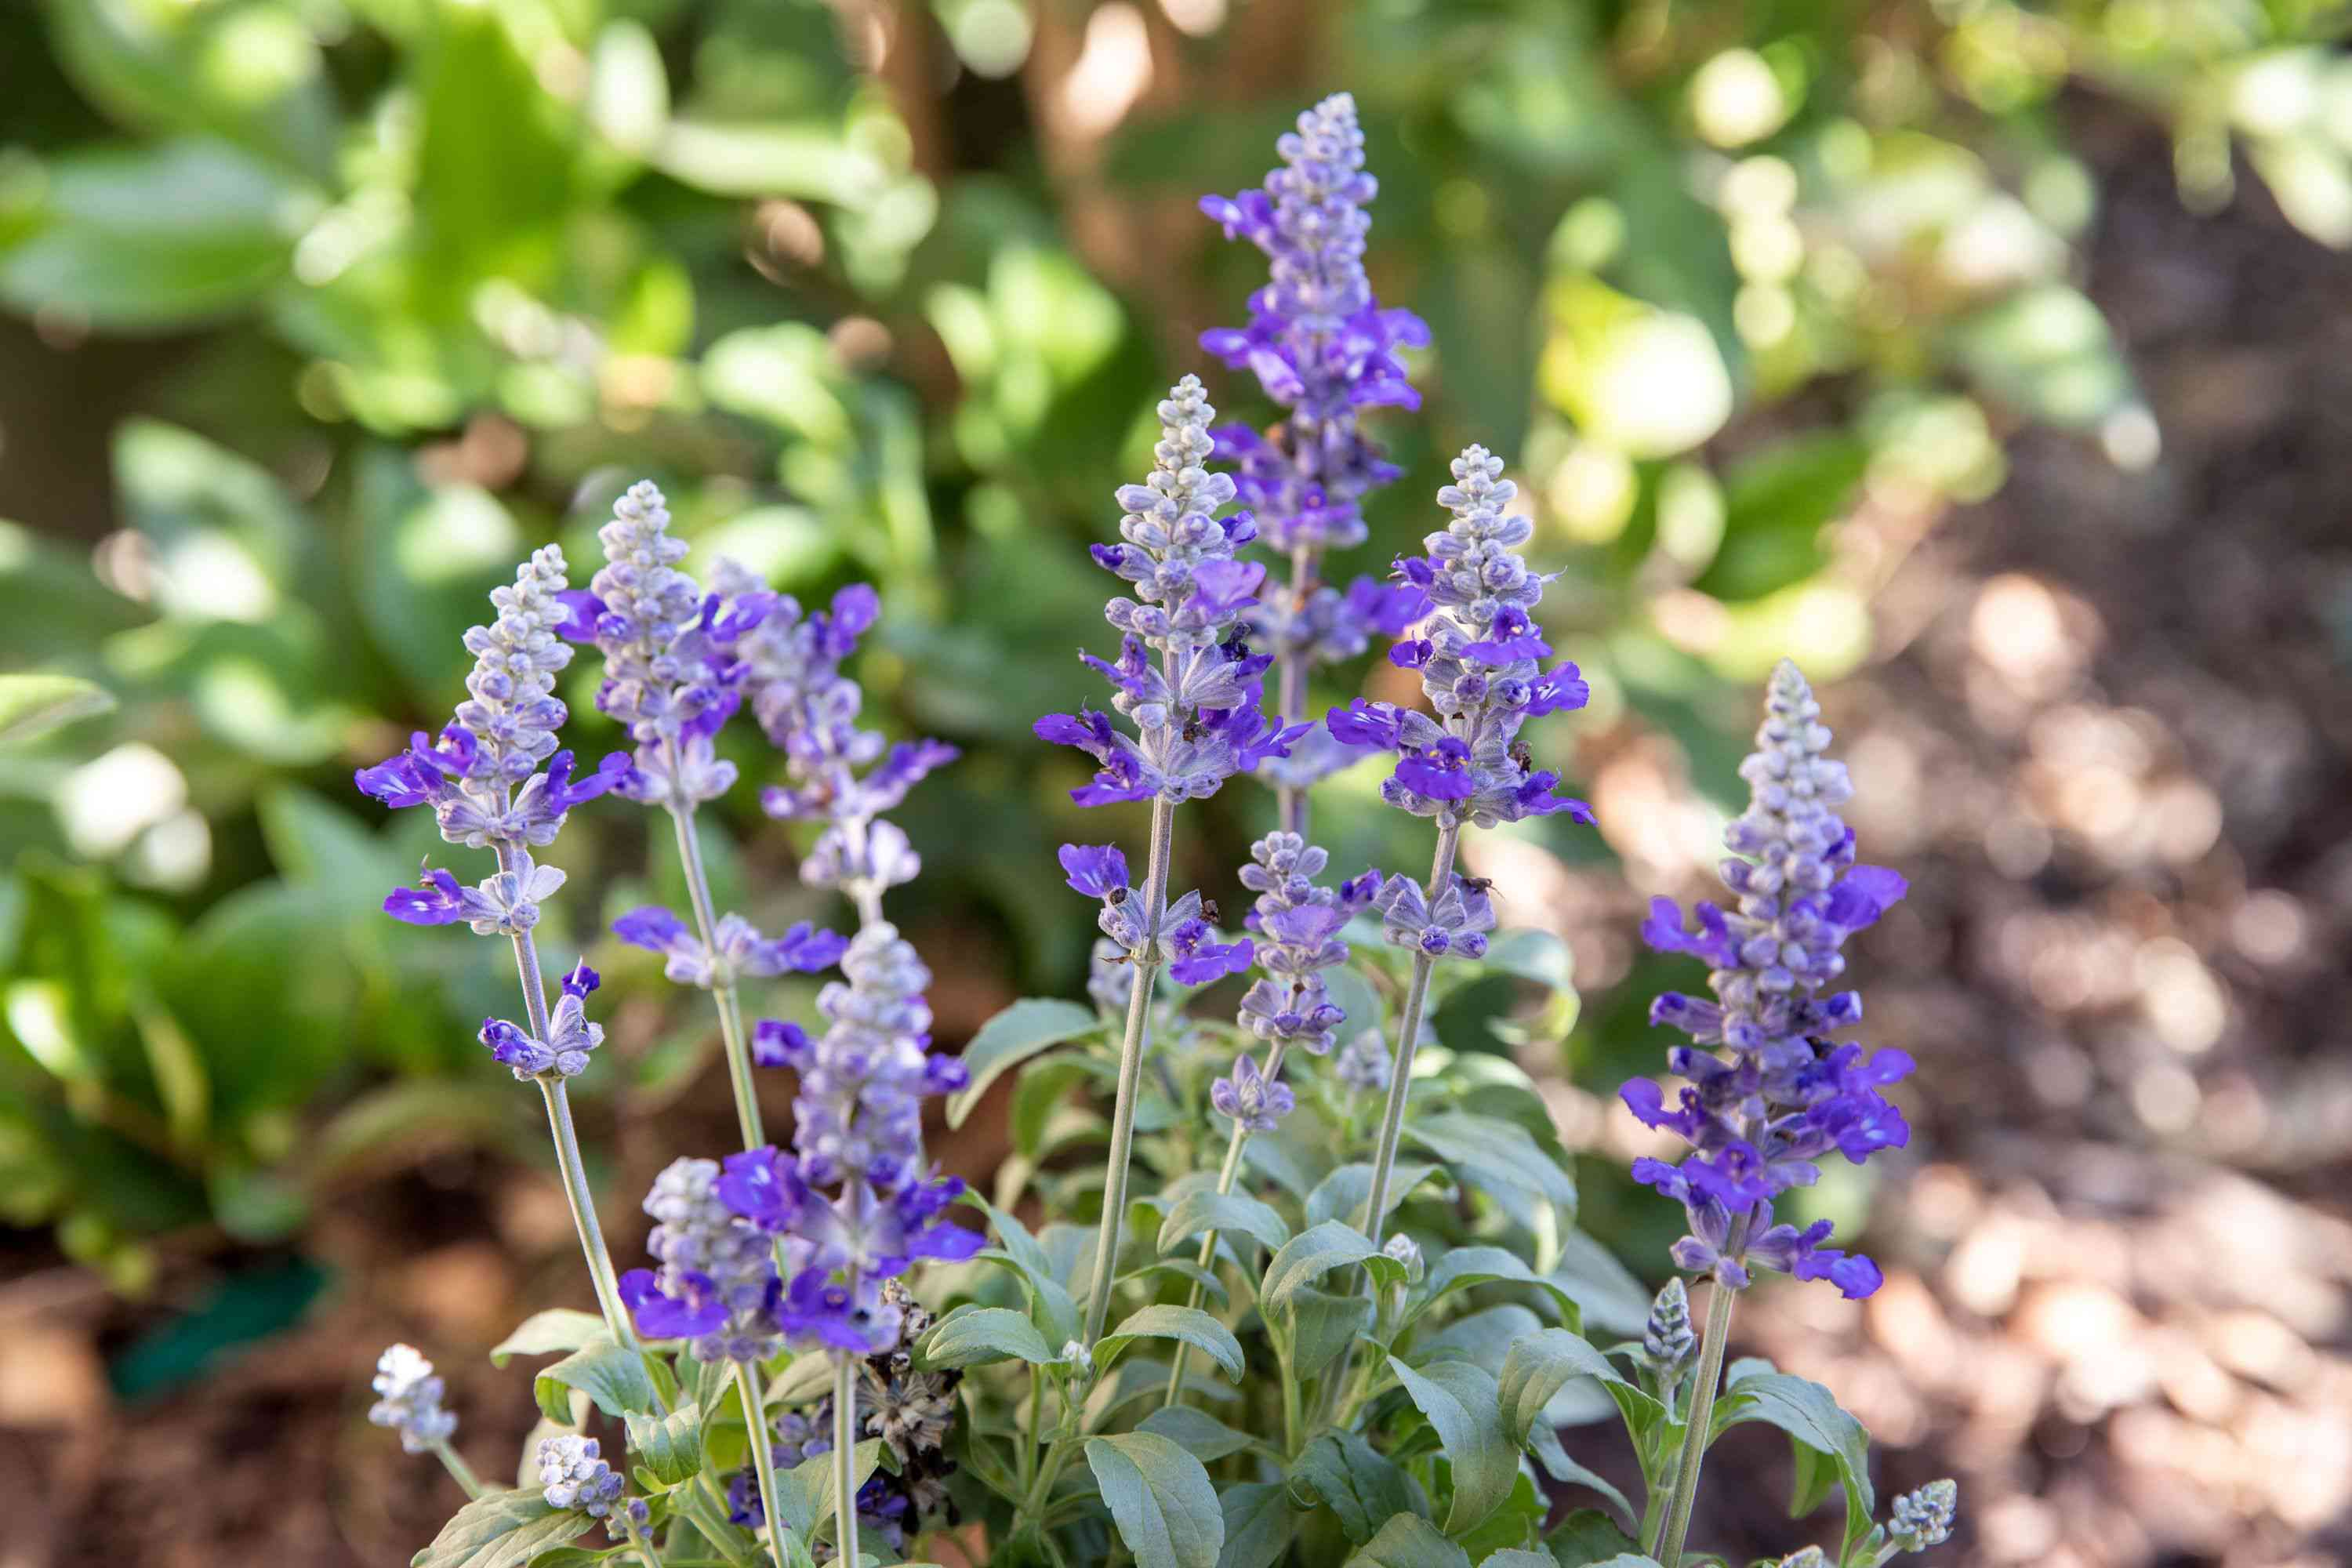 Salvia plant with small purple flowers on spikes closeup